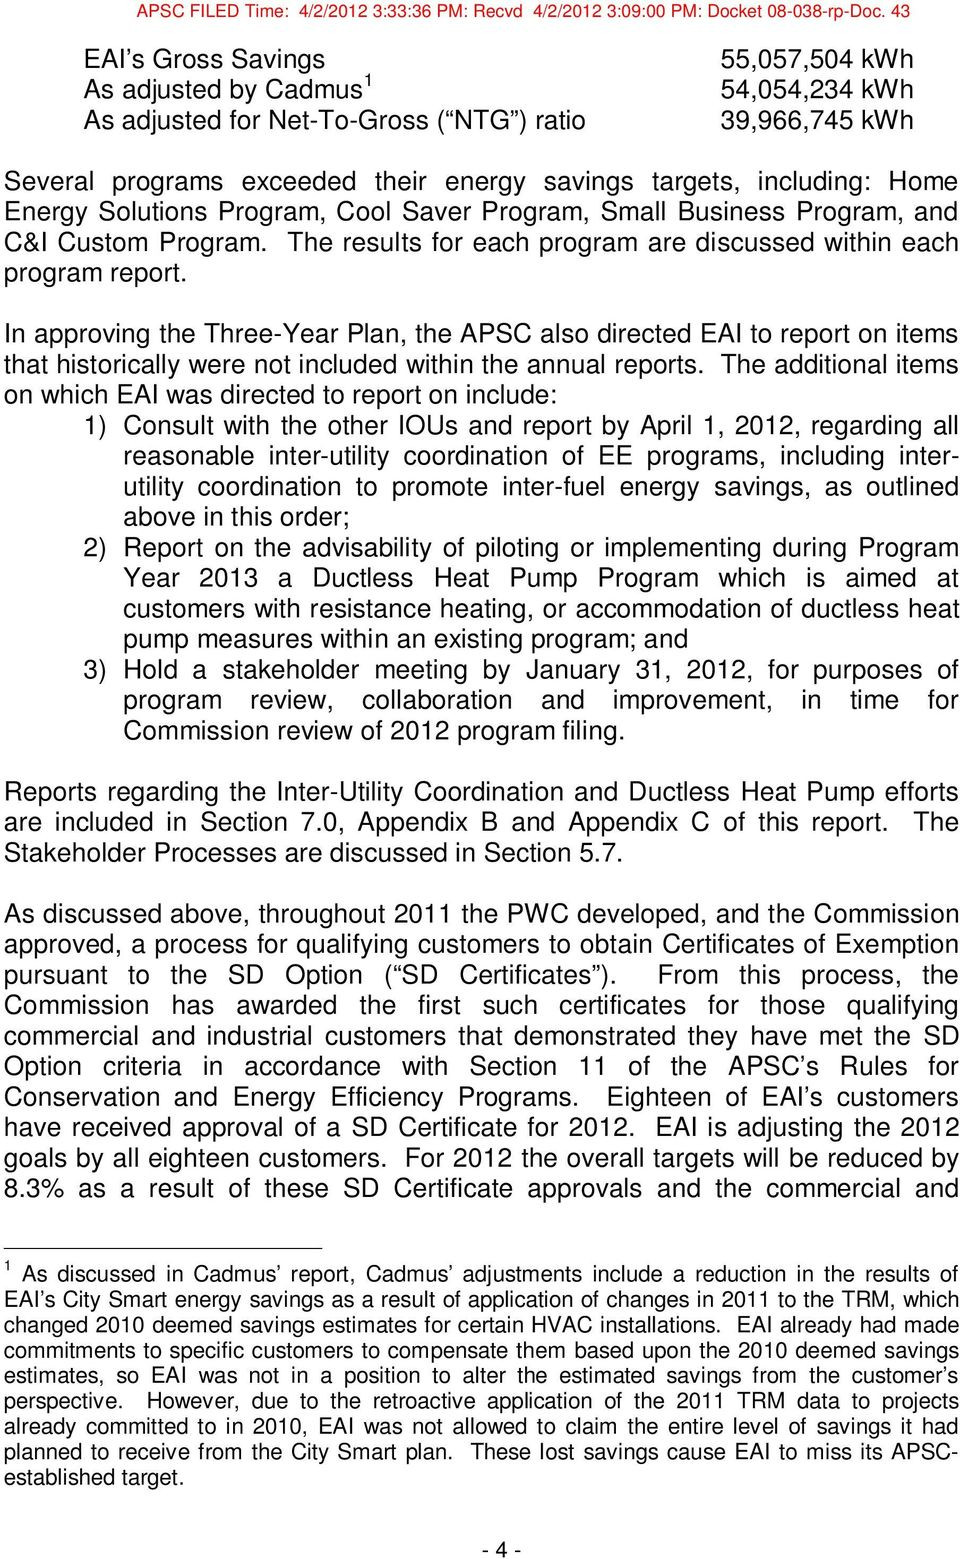 In approving the Three-Year Plan, the APSC also directed EAI to report on items that historically were not included within the annual reports.